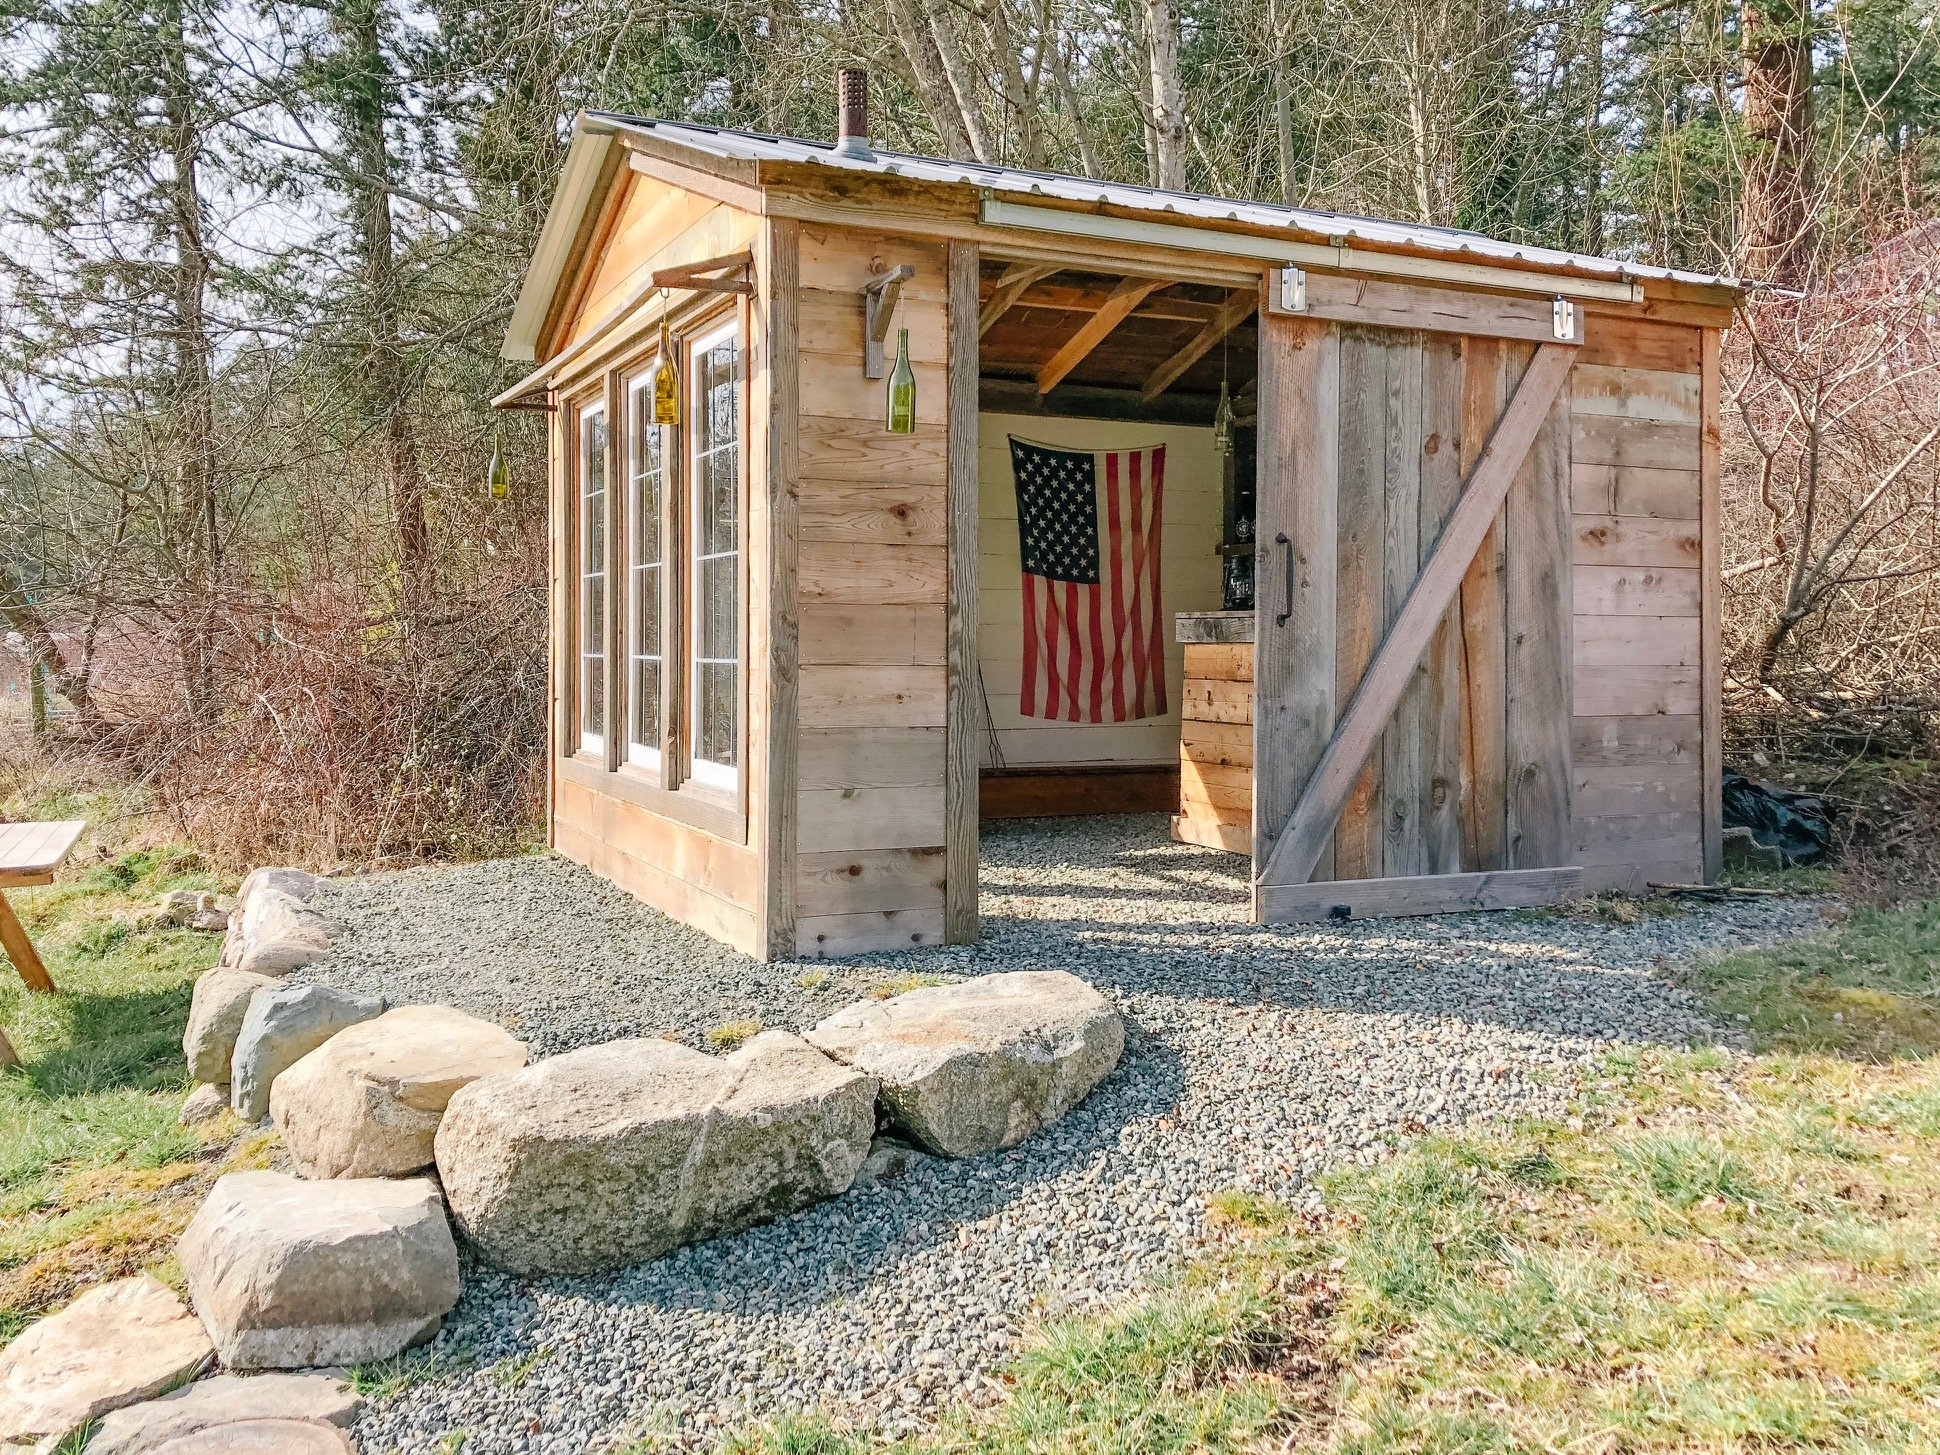 Forget Man Caves, Backyard Bar Sheds Are the New Trend. on Open Backyard Ideas id=96538